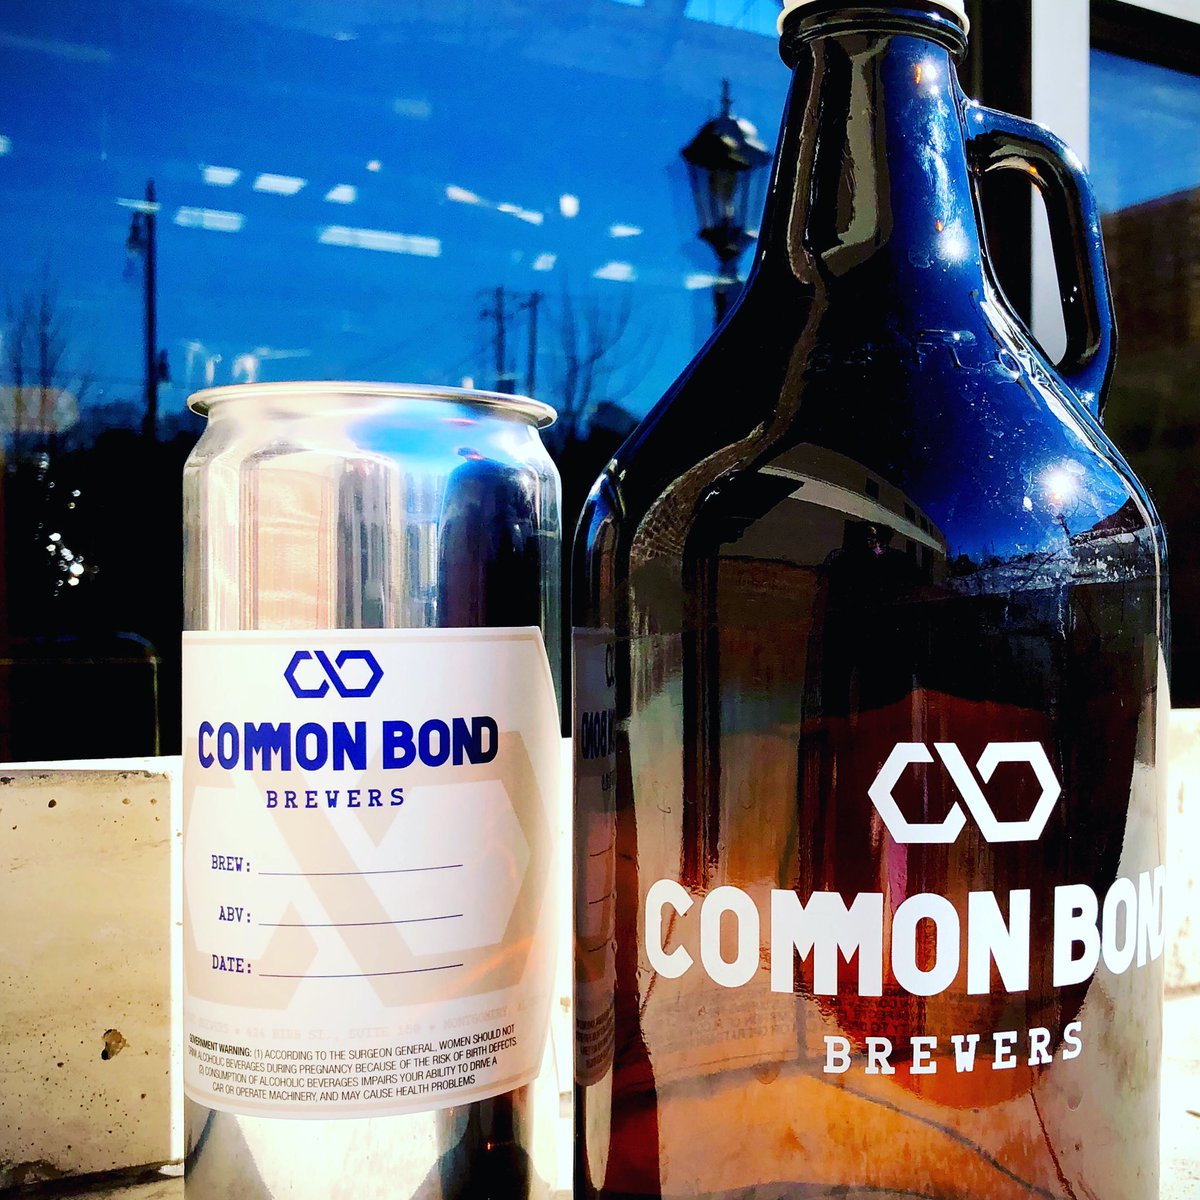 Common Bond Brewers On Twitter Common Bond Taproom Remains Open For All Your Essentially Local Made Craft Beers But We Have Changed Our Hours Sun Tue Closed Wed Thu 3 7 Fri Sat 12 7 Also Note Our Temporary Price